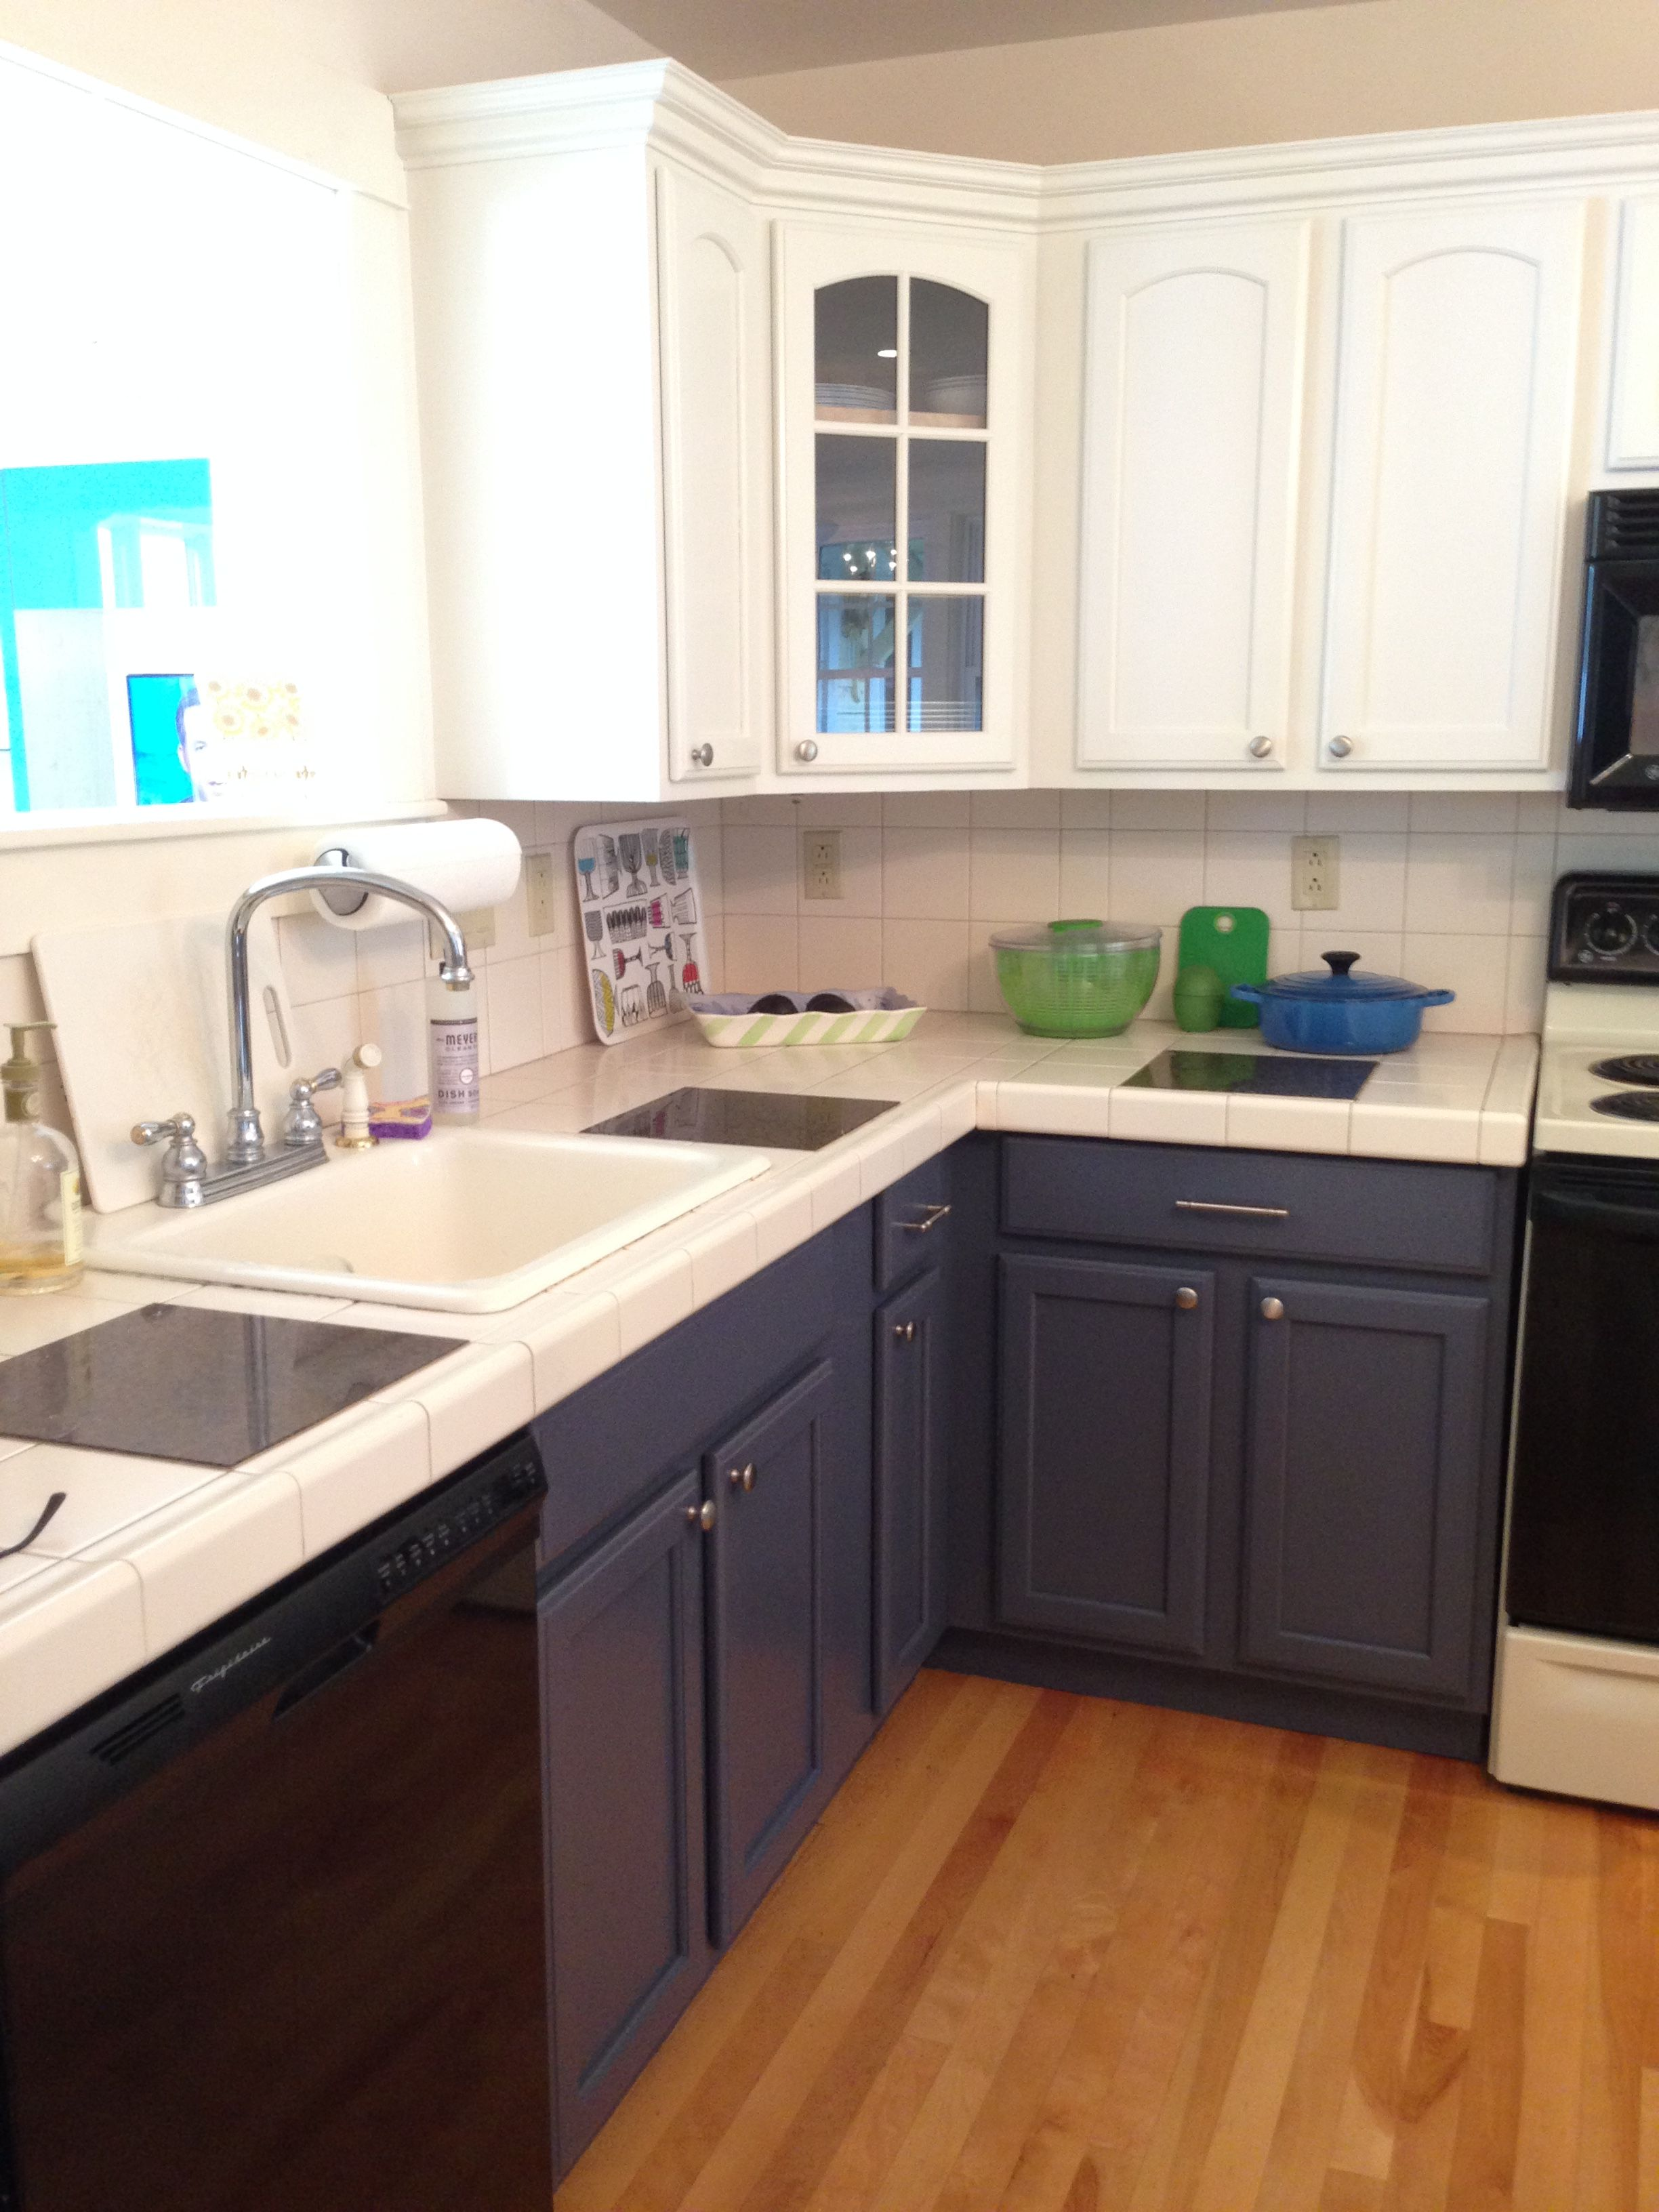 Our Maine cottage kitchen transformed - with paint and new ...